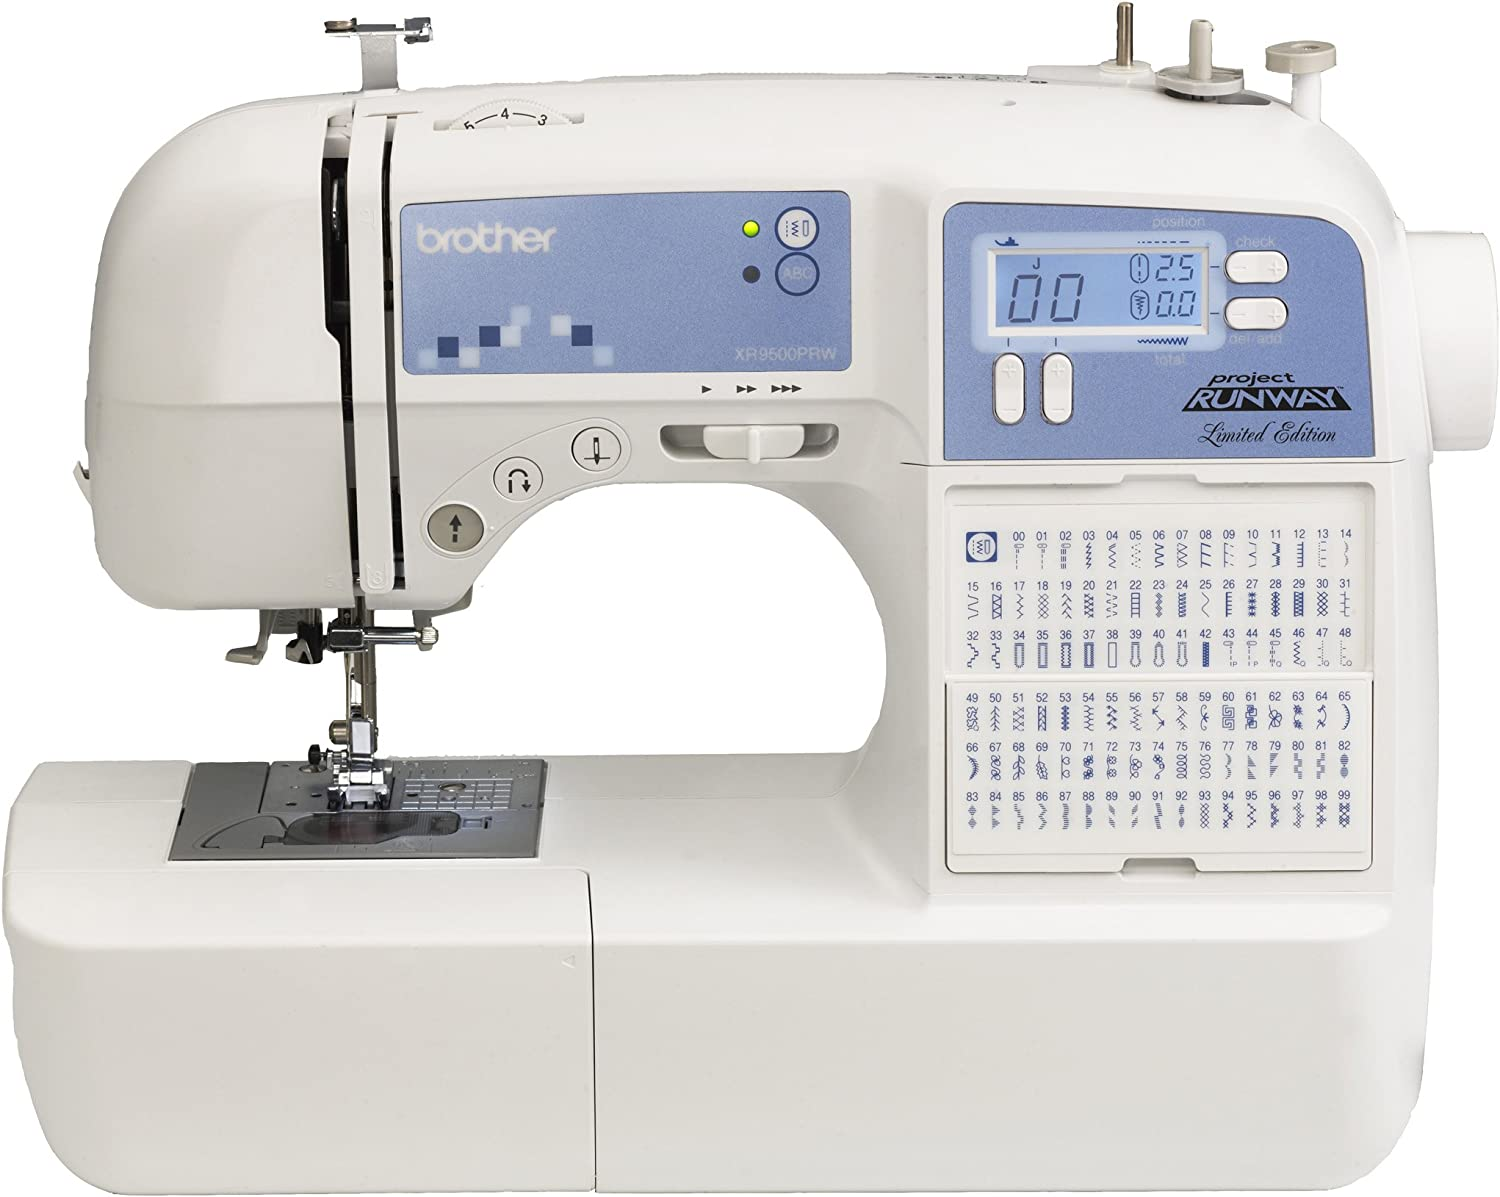 Top 8 Best Sewing Machine For Quilting Reviews in 2020 3